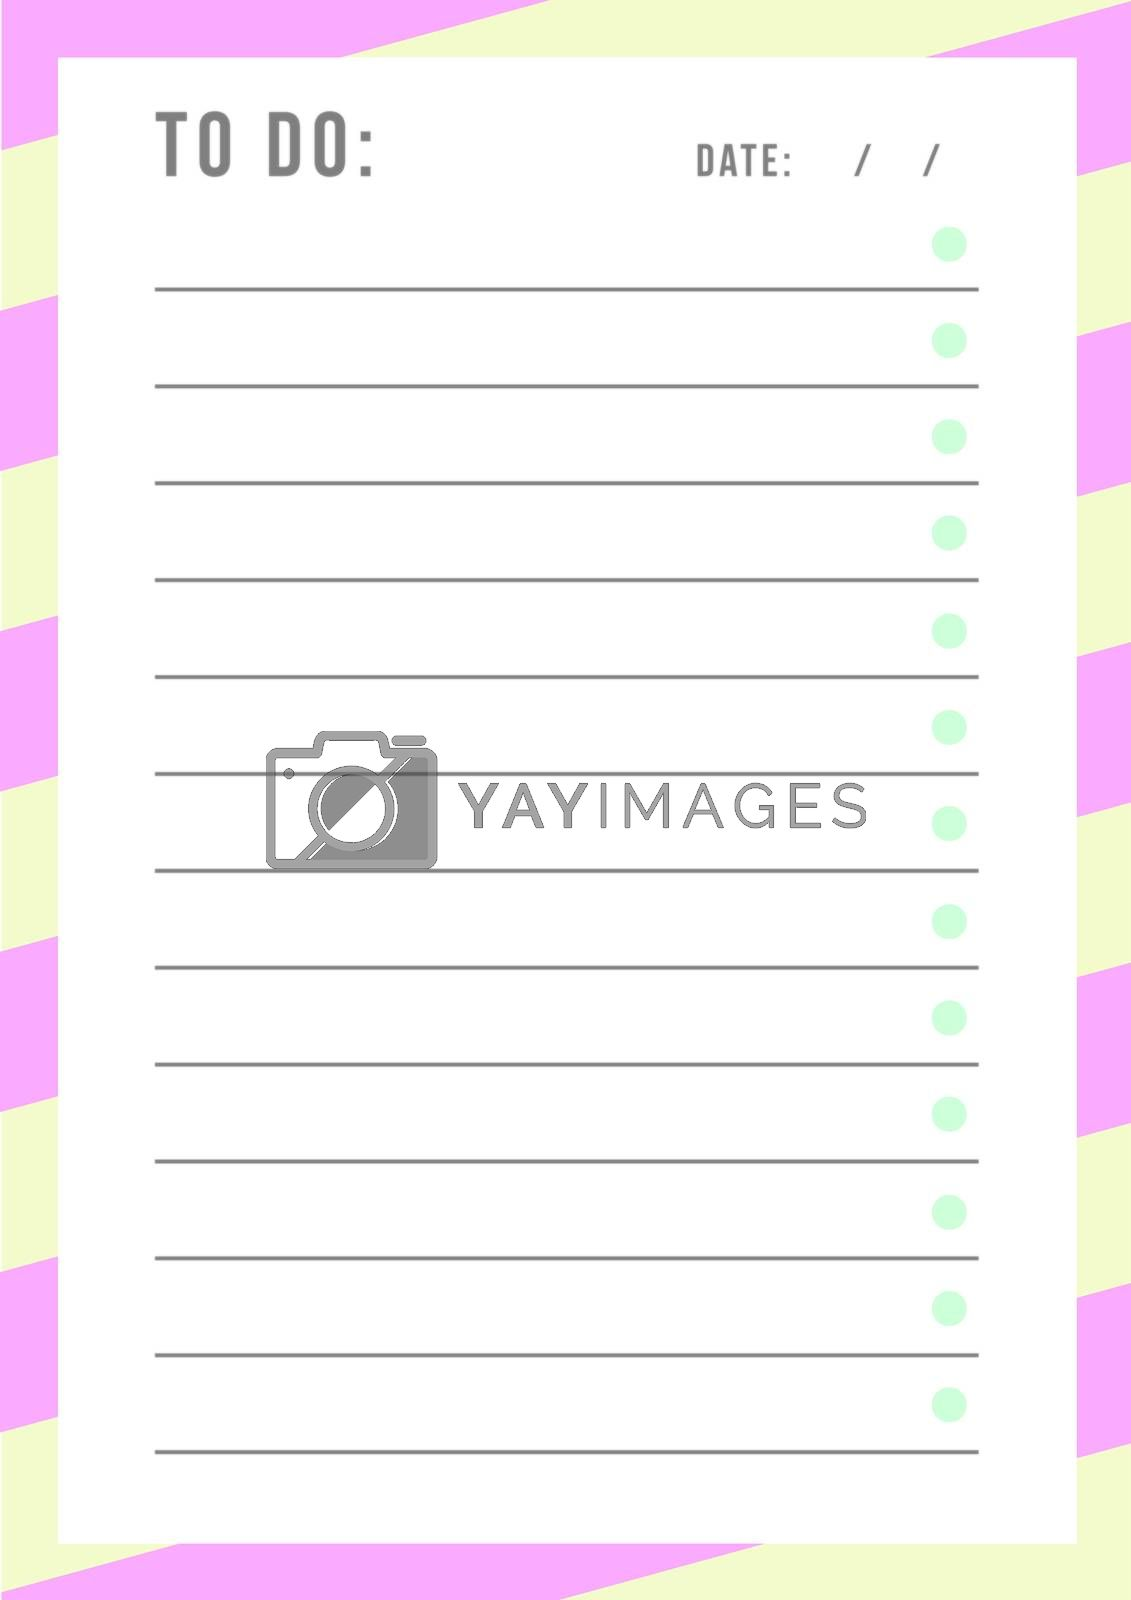 Daily planner template layout by Wavebreakmedia